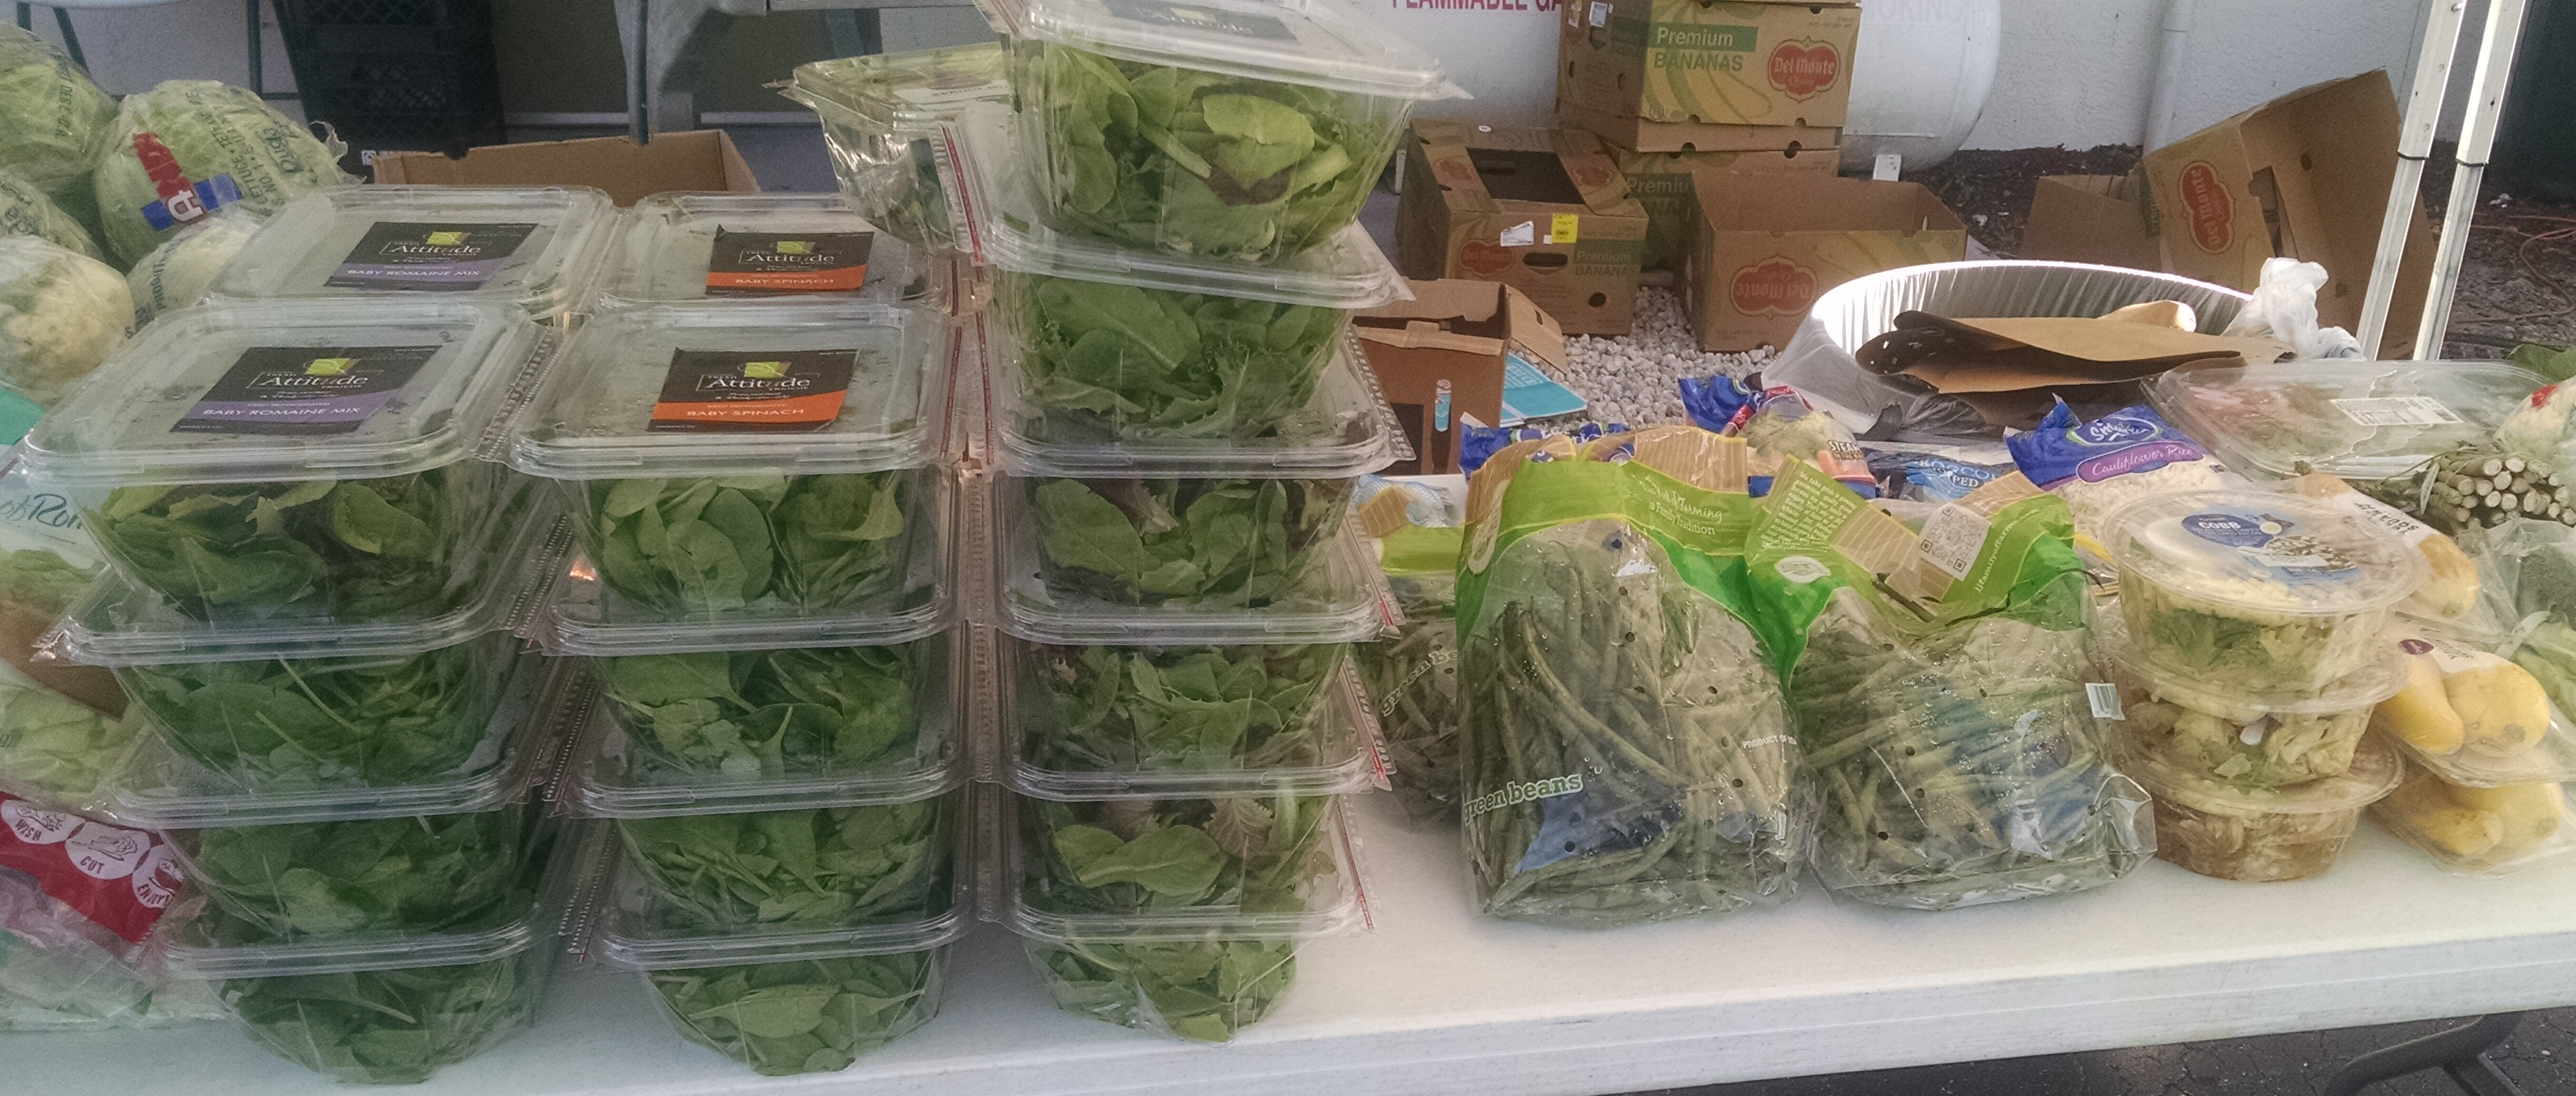 photo of lettuce, spinach and other fresh vegetables all packaged in plastic